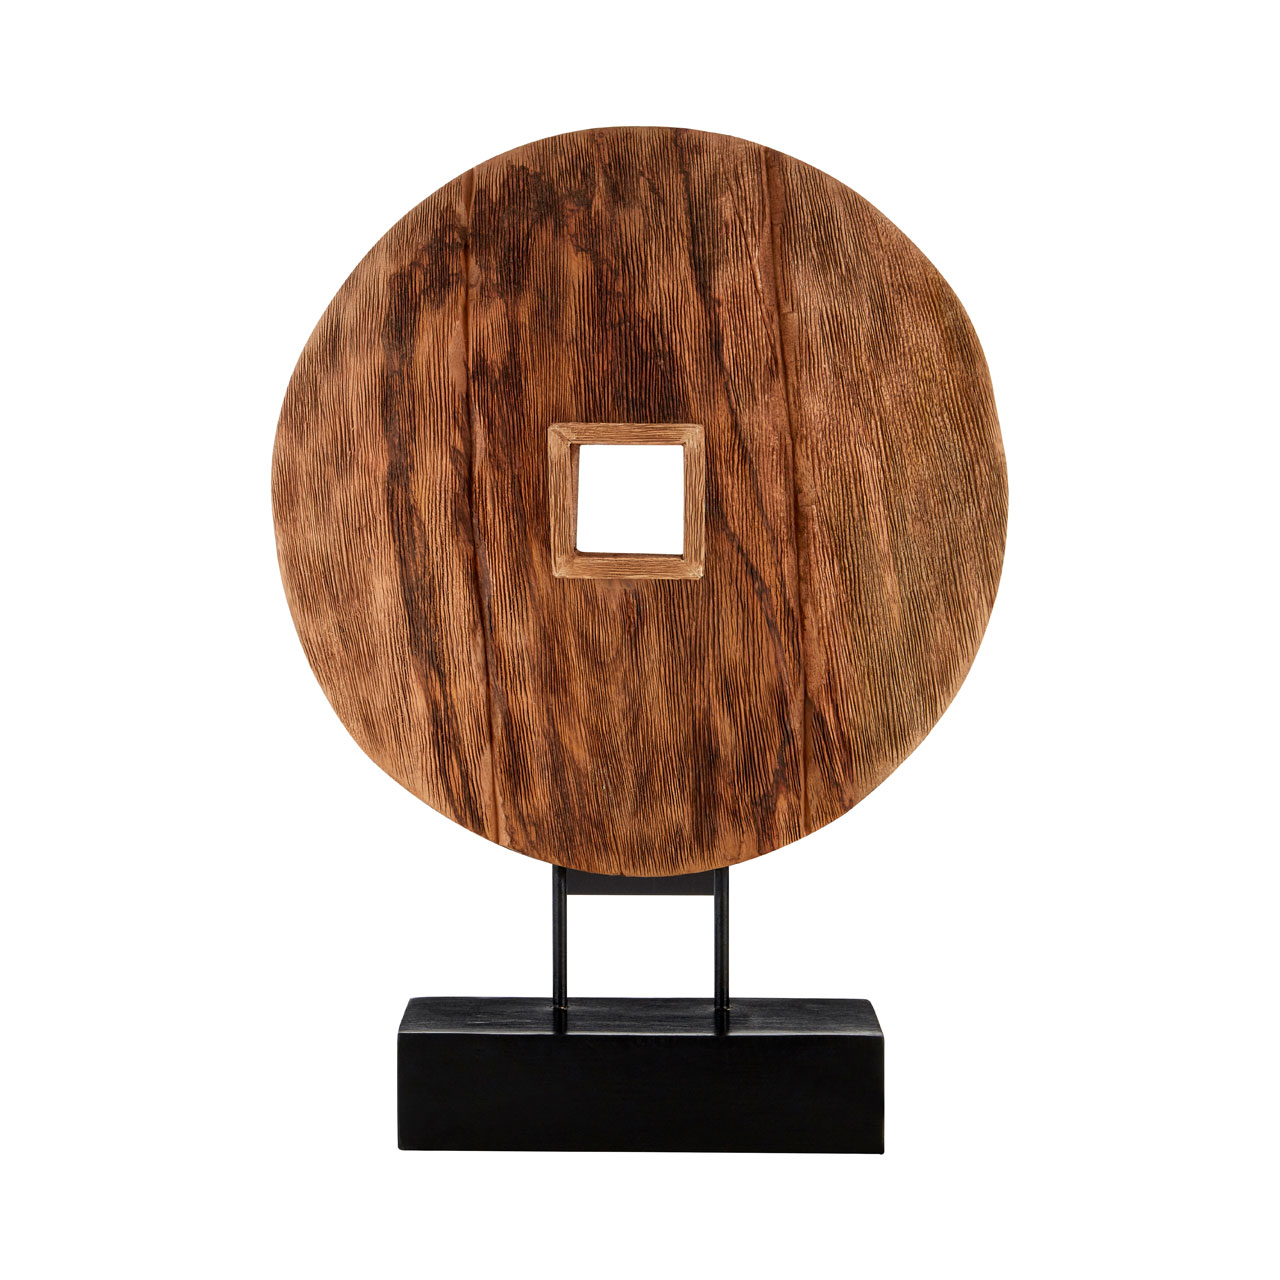 Prime Furnishing Complements Disc On Stand Wooden